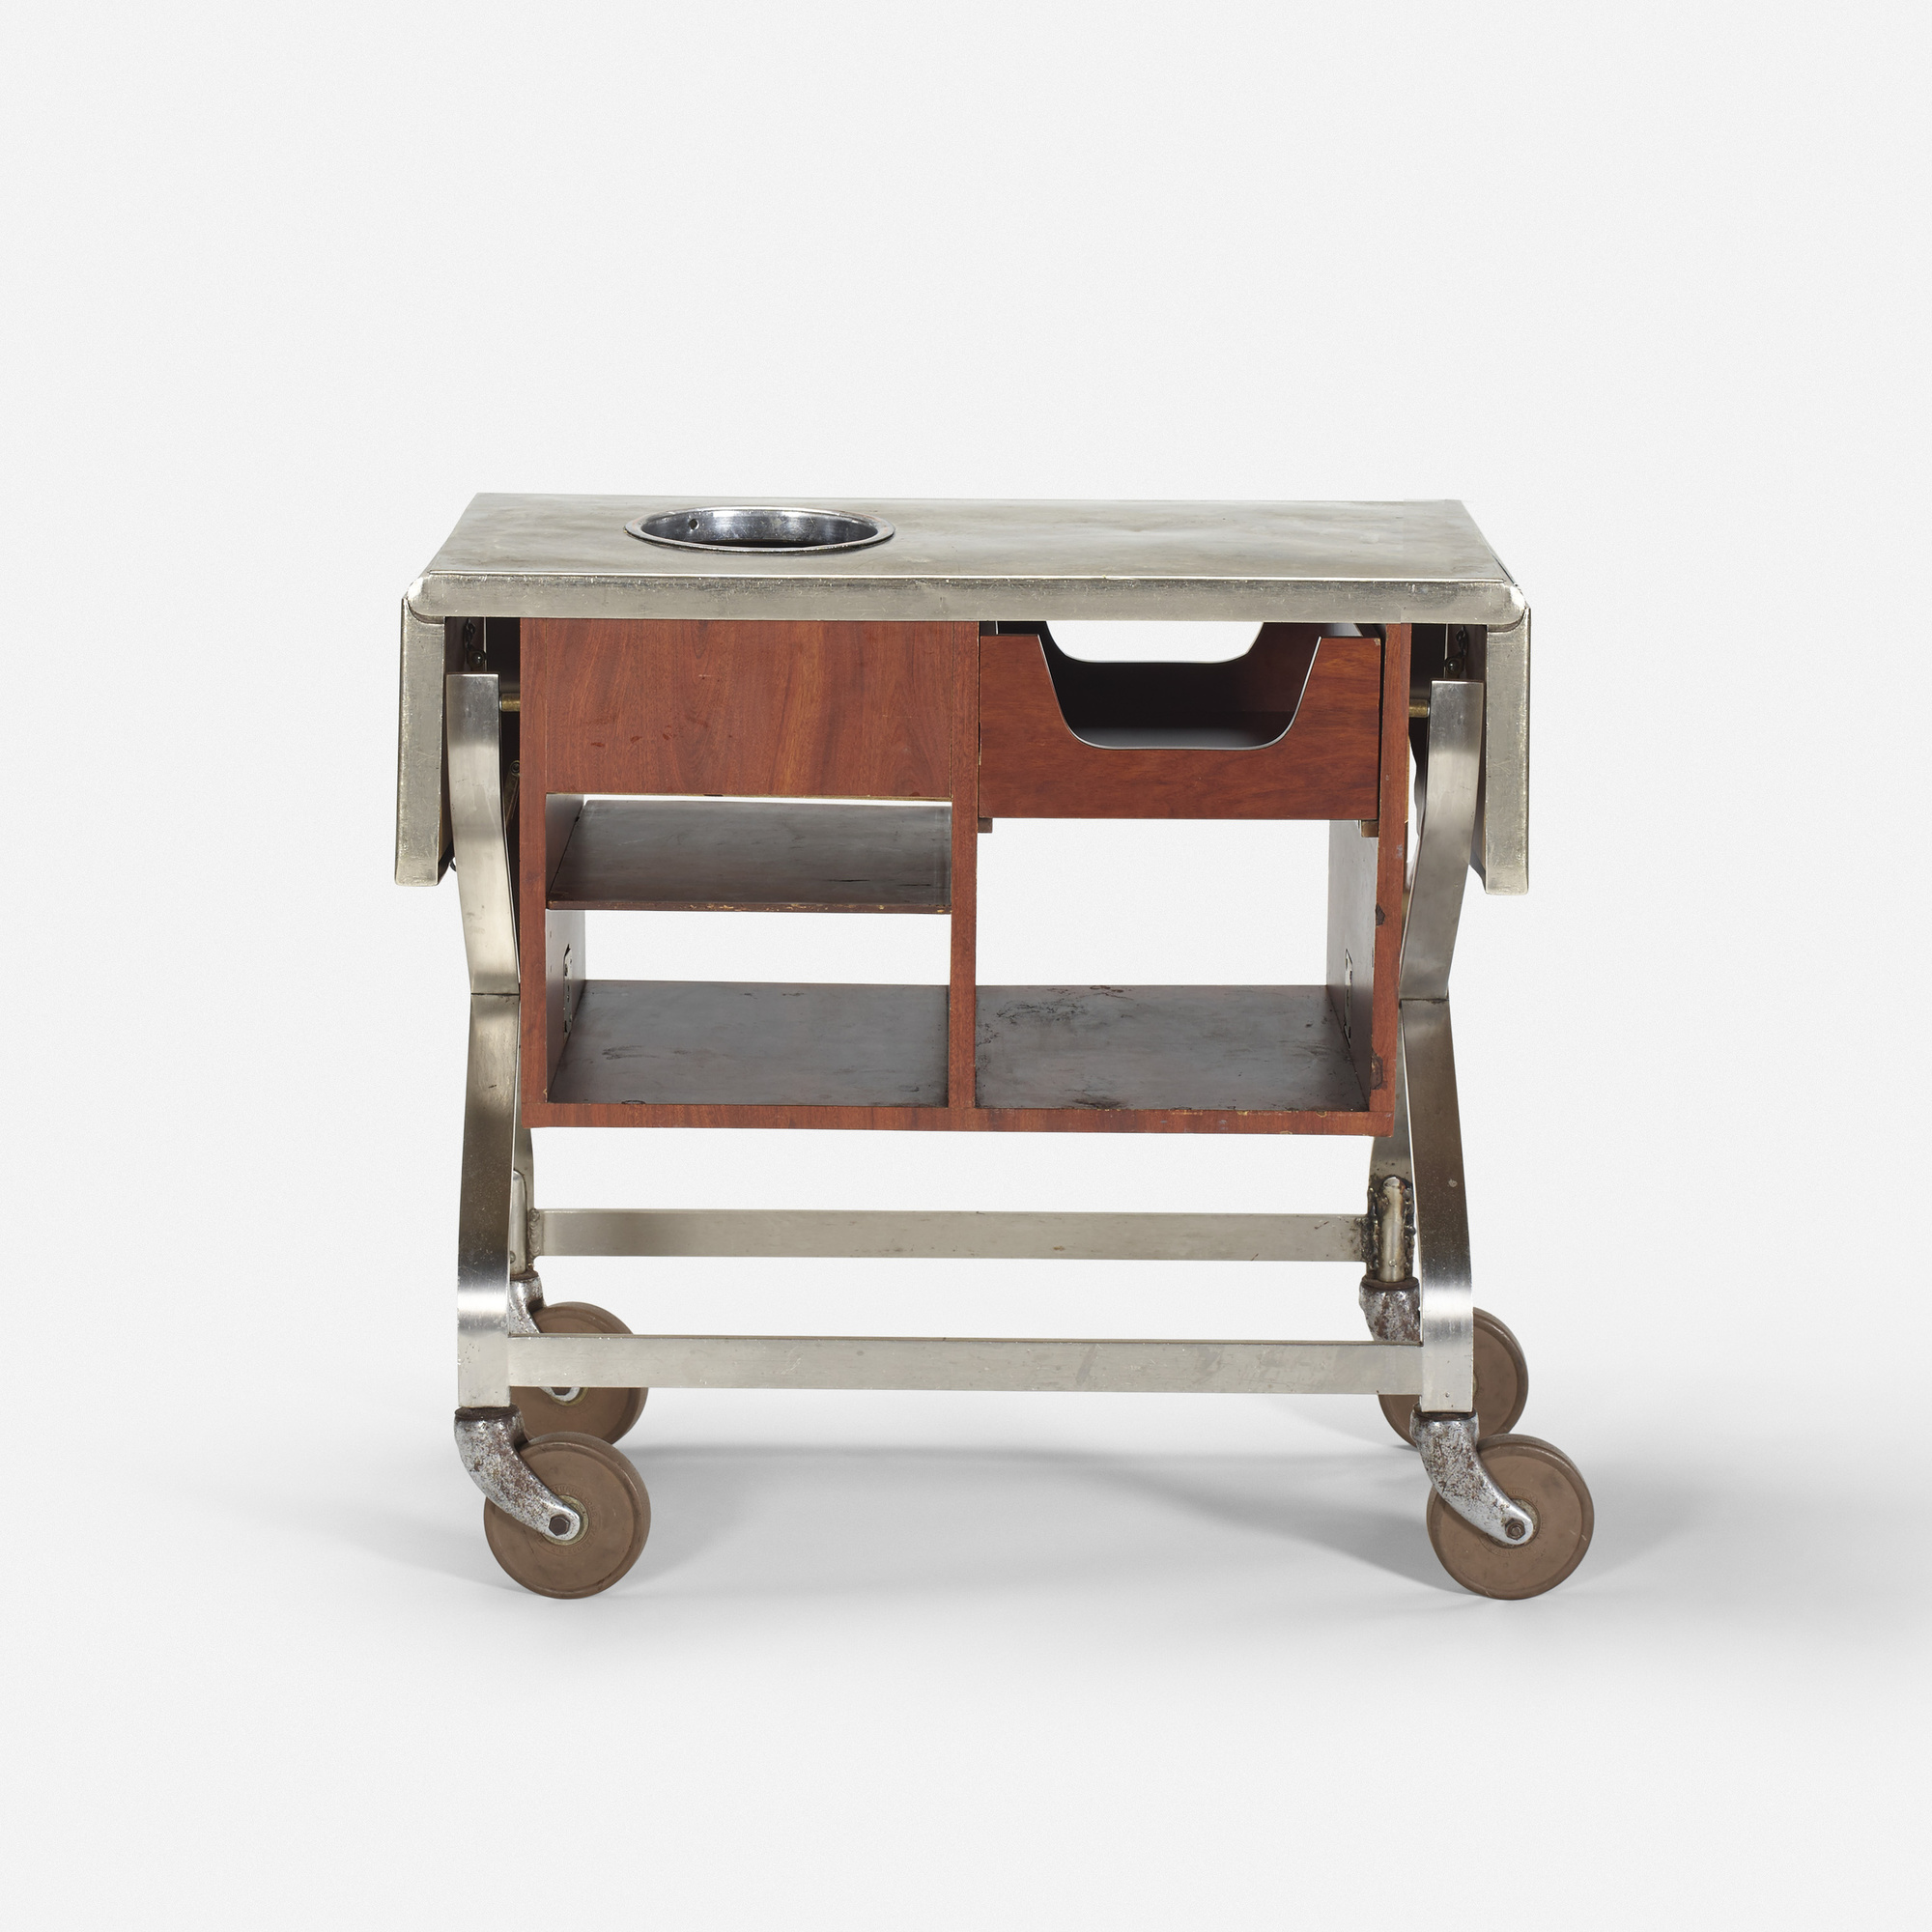 738: Garth and Ada Louise Huxtable / Serving cart from The Four Seasons (1 of 1)